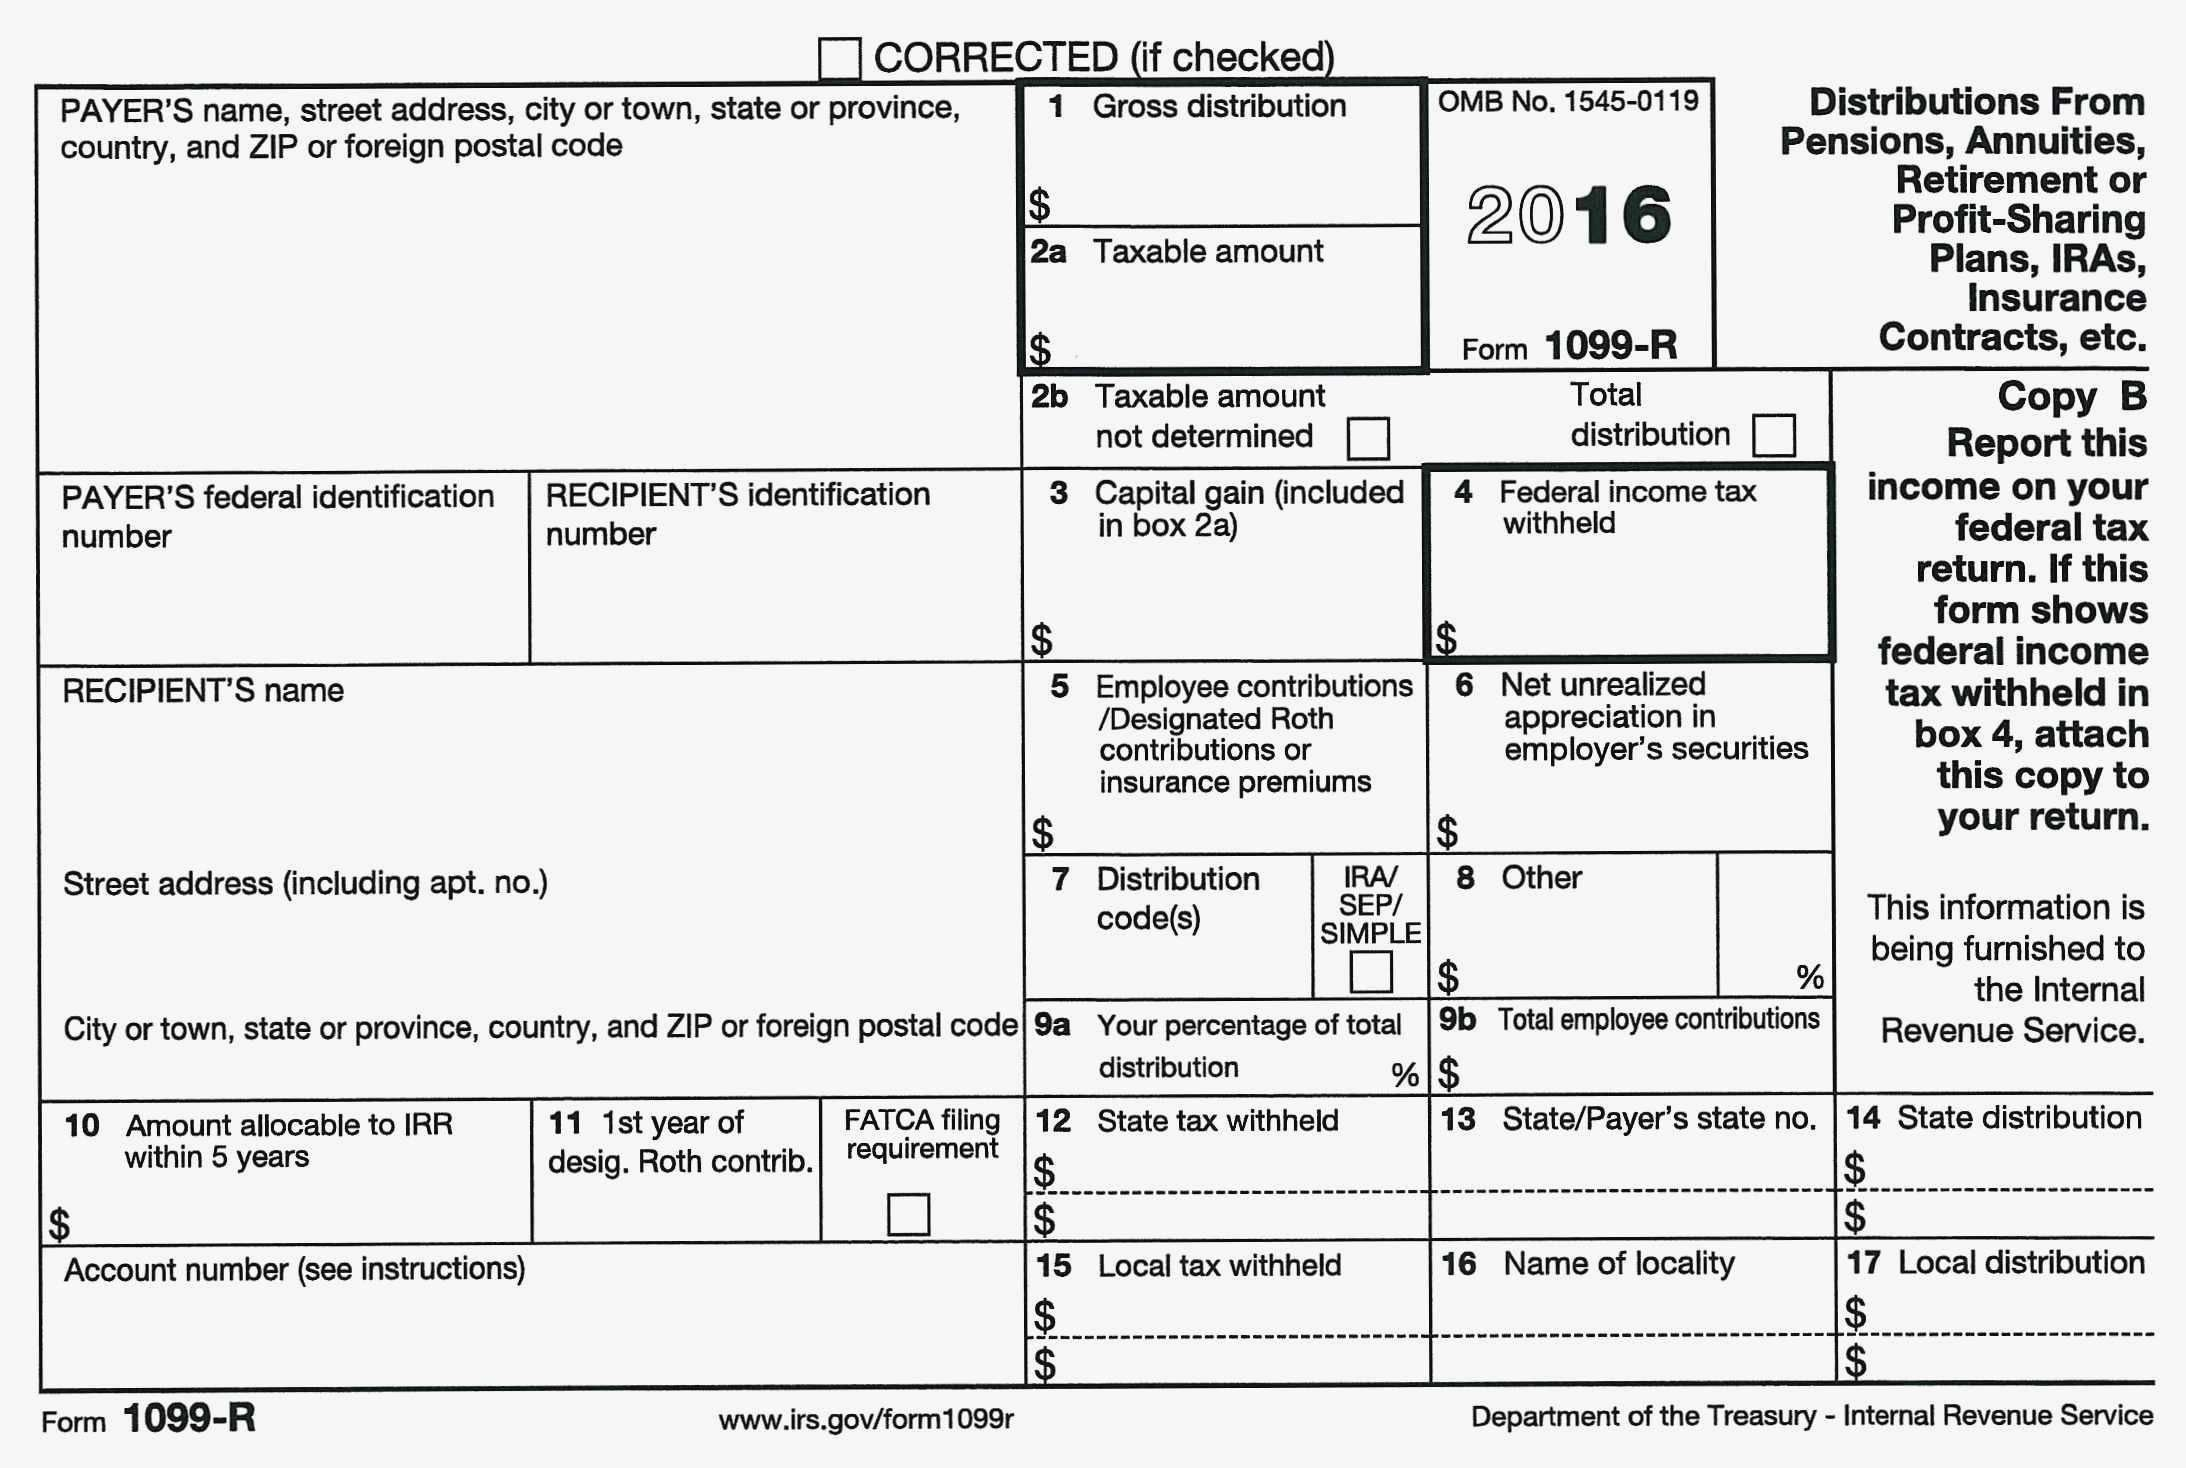 ssa 1099 form sample  Irs Gov forms 7 Misc 7 Awesome 7 Misc Template for ...